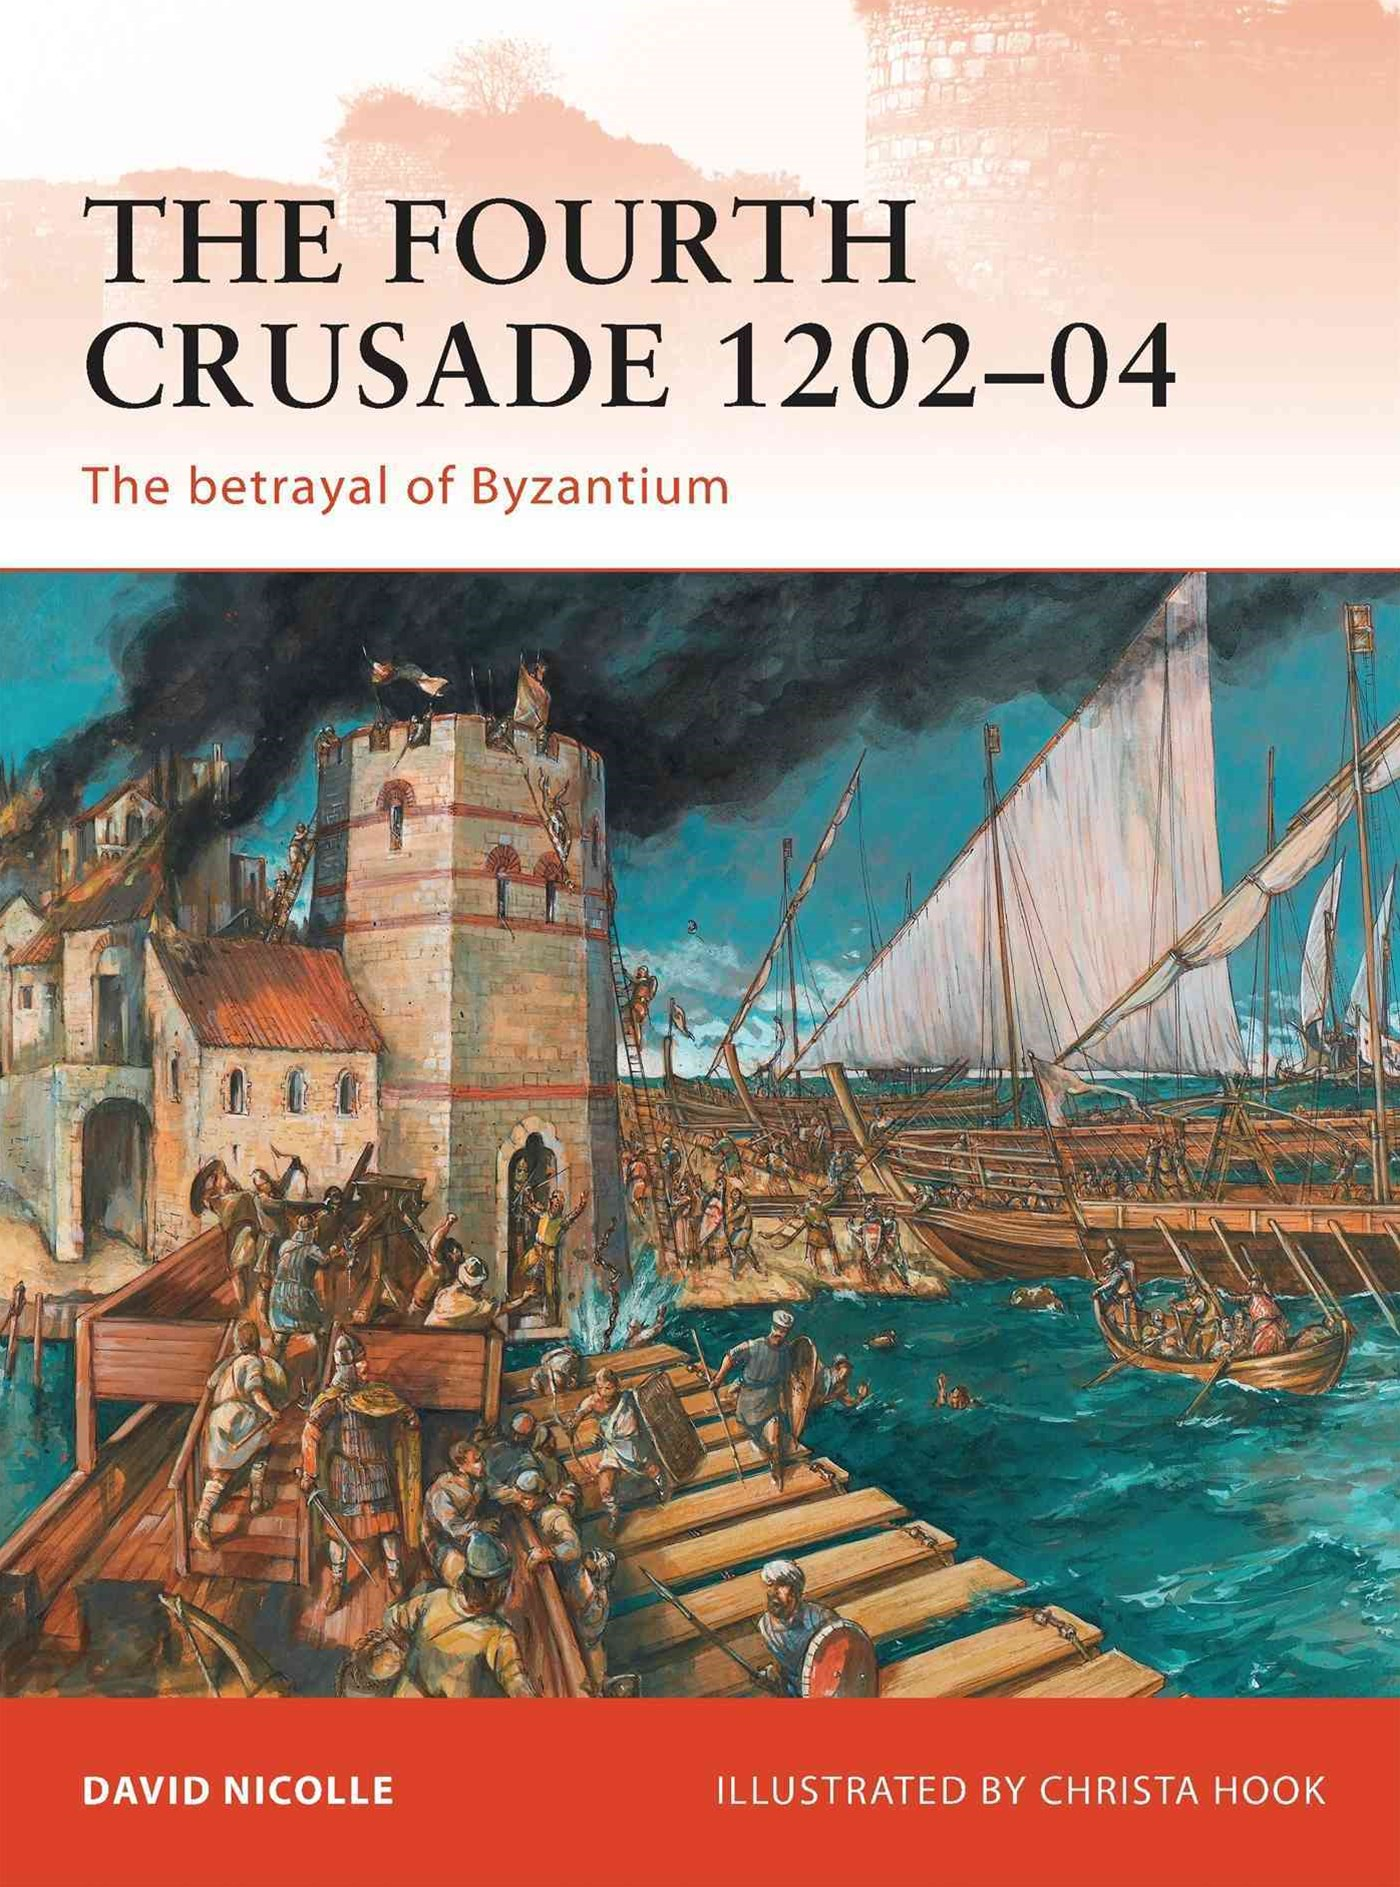 The Fourth Crusade, 1202-04